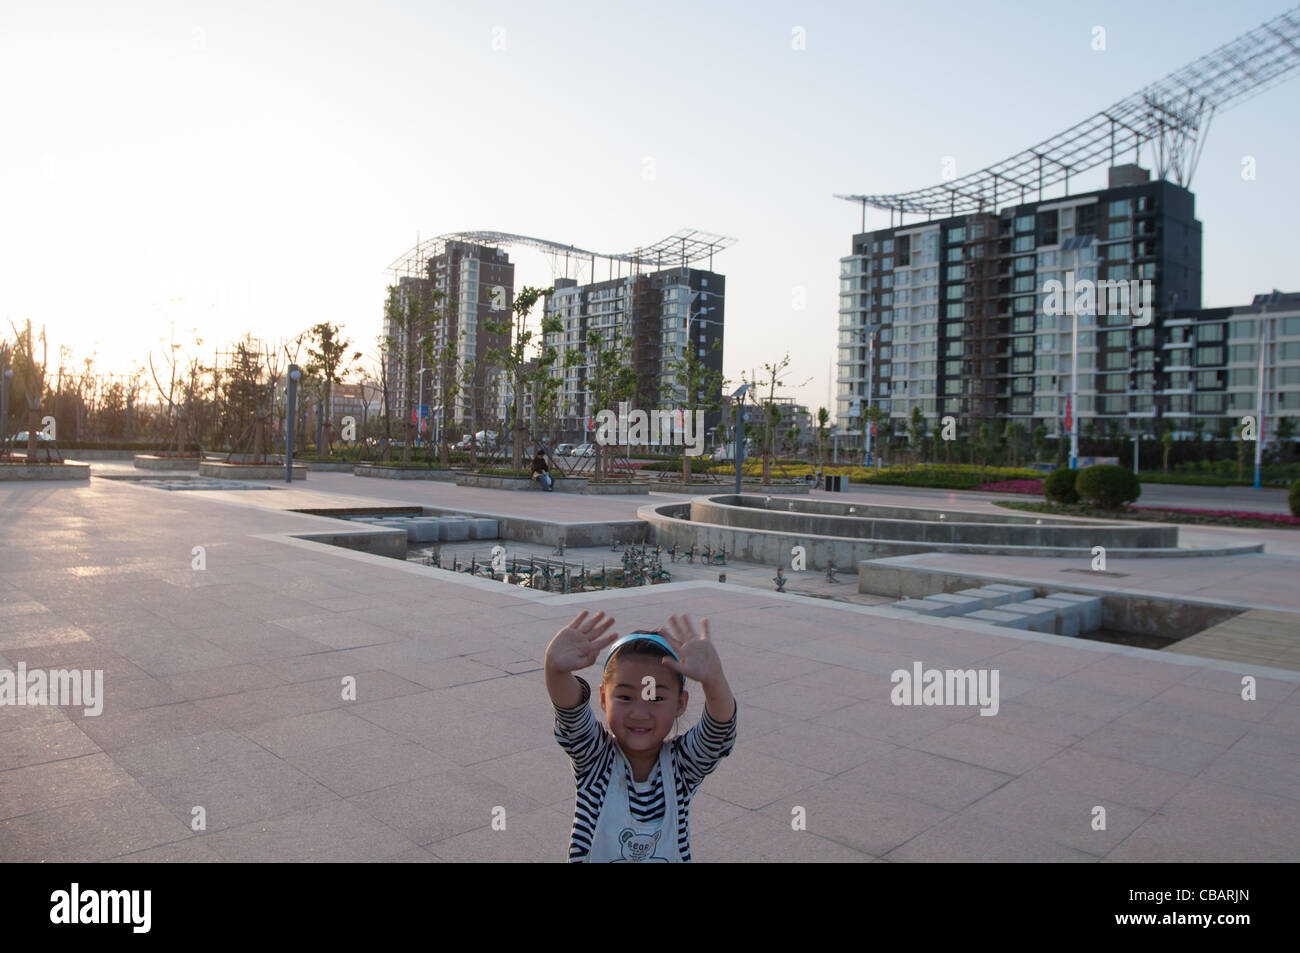 A child in front of a group of buildings under construction. Dezhou, Shandong, China - Stock Image